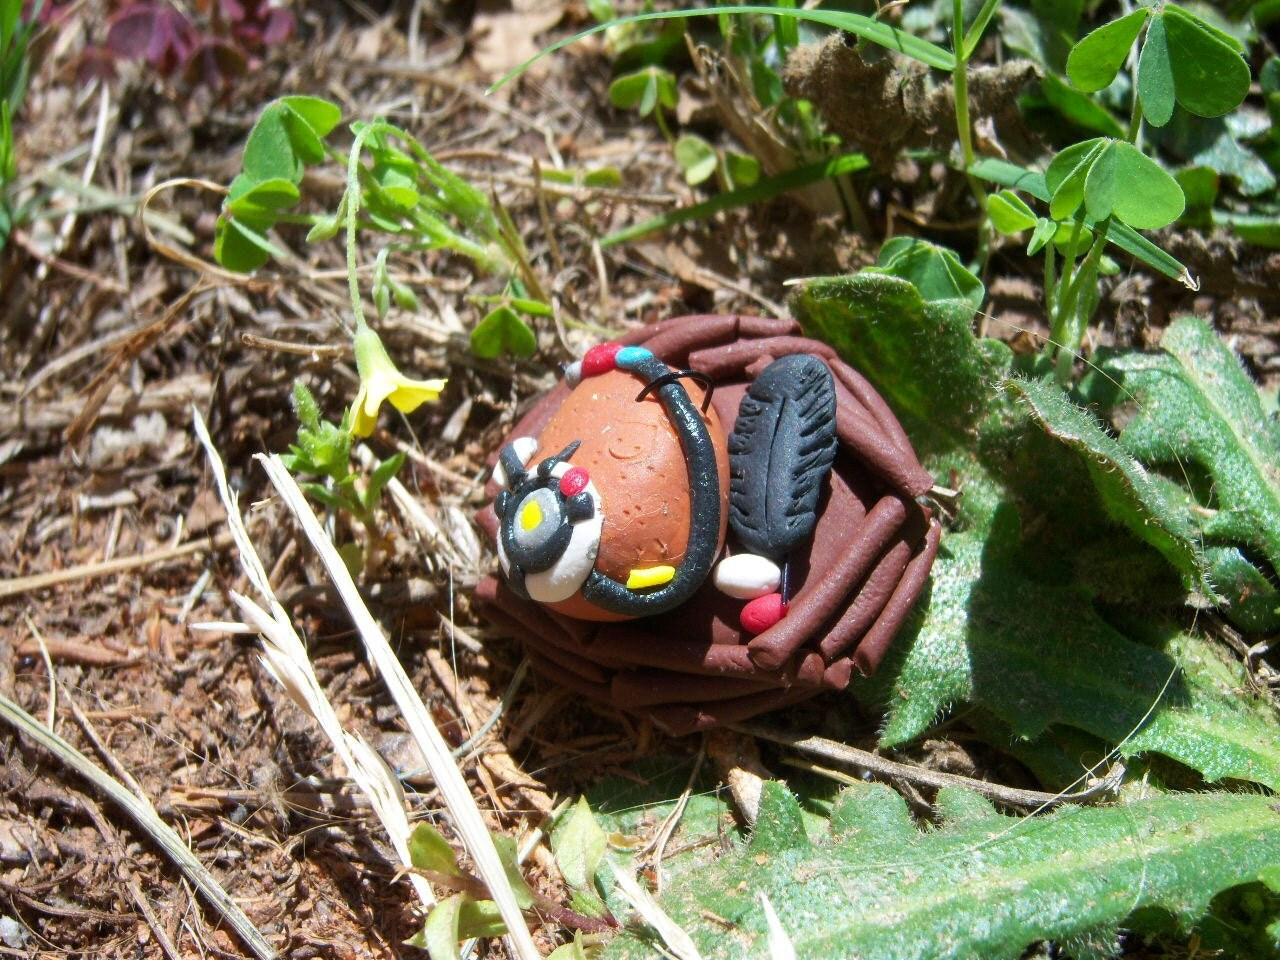 portal 2 glados as a potato. Portal 2 GlaDOs Potato Nest